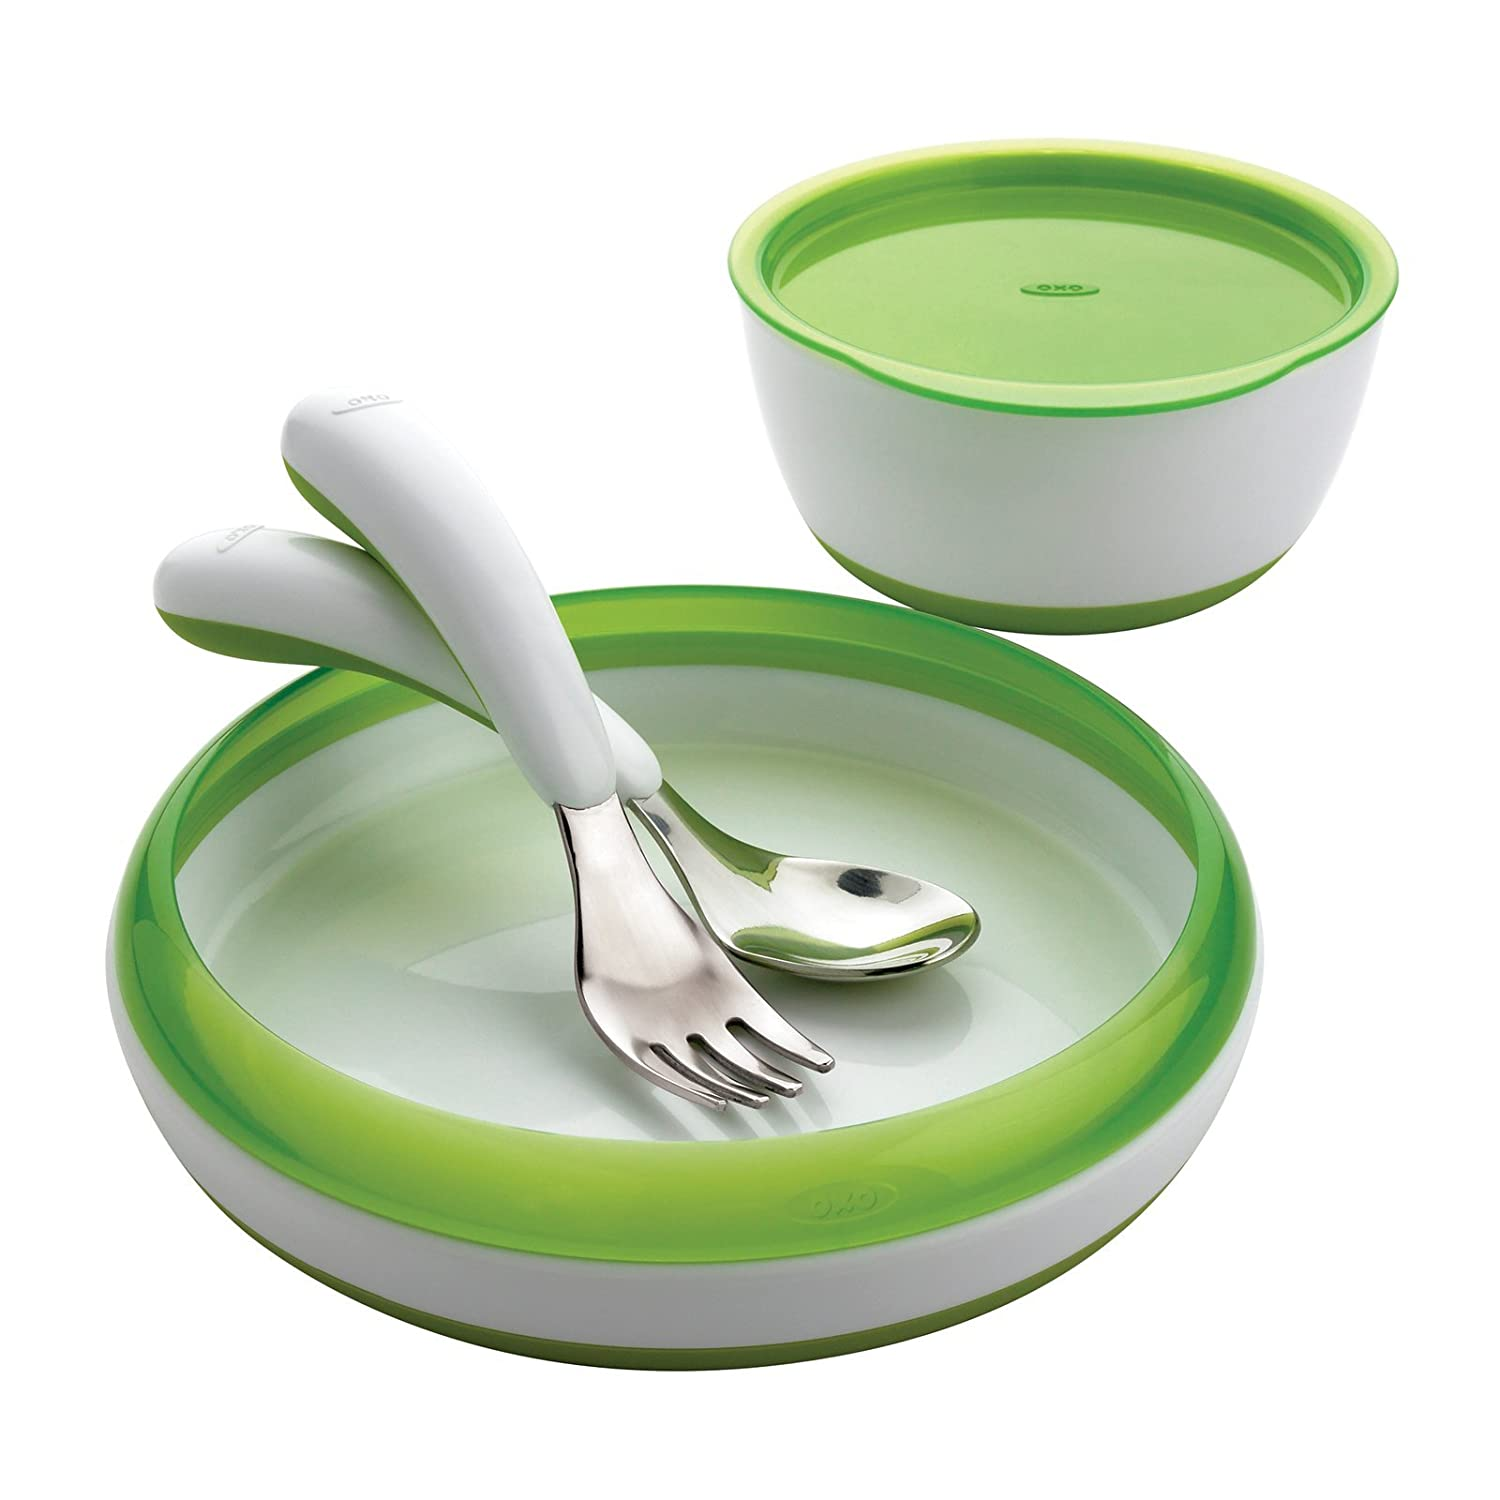 Amazon.com  OXO Tot 4-Piece Feeding Set Green  Baby Dinnerware Sets  Baby  sc 1 st  Amazon.com & Amazon.com : OXO Tot 4-Piece Feeding Set Green : Baby Dinnerware ...